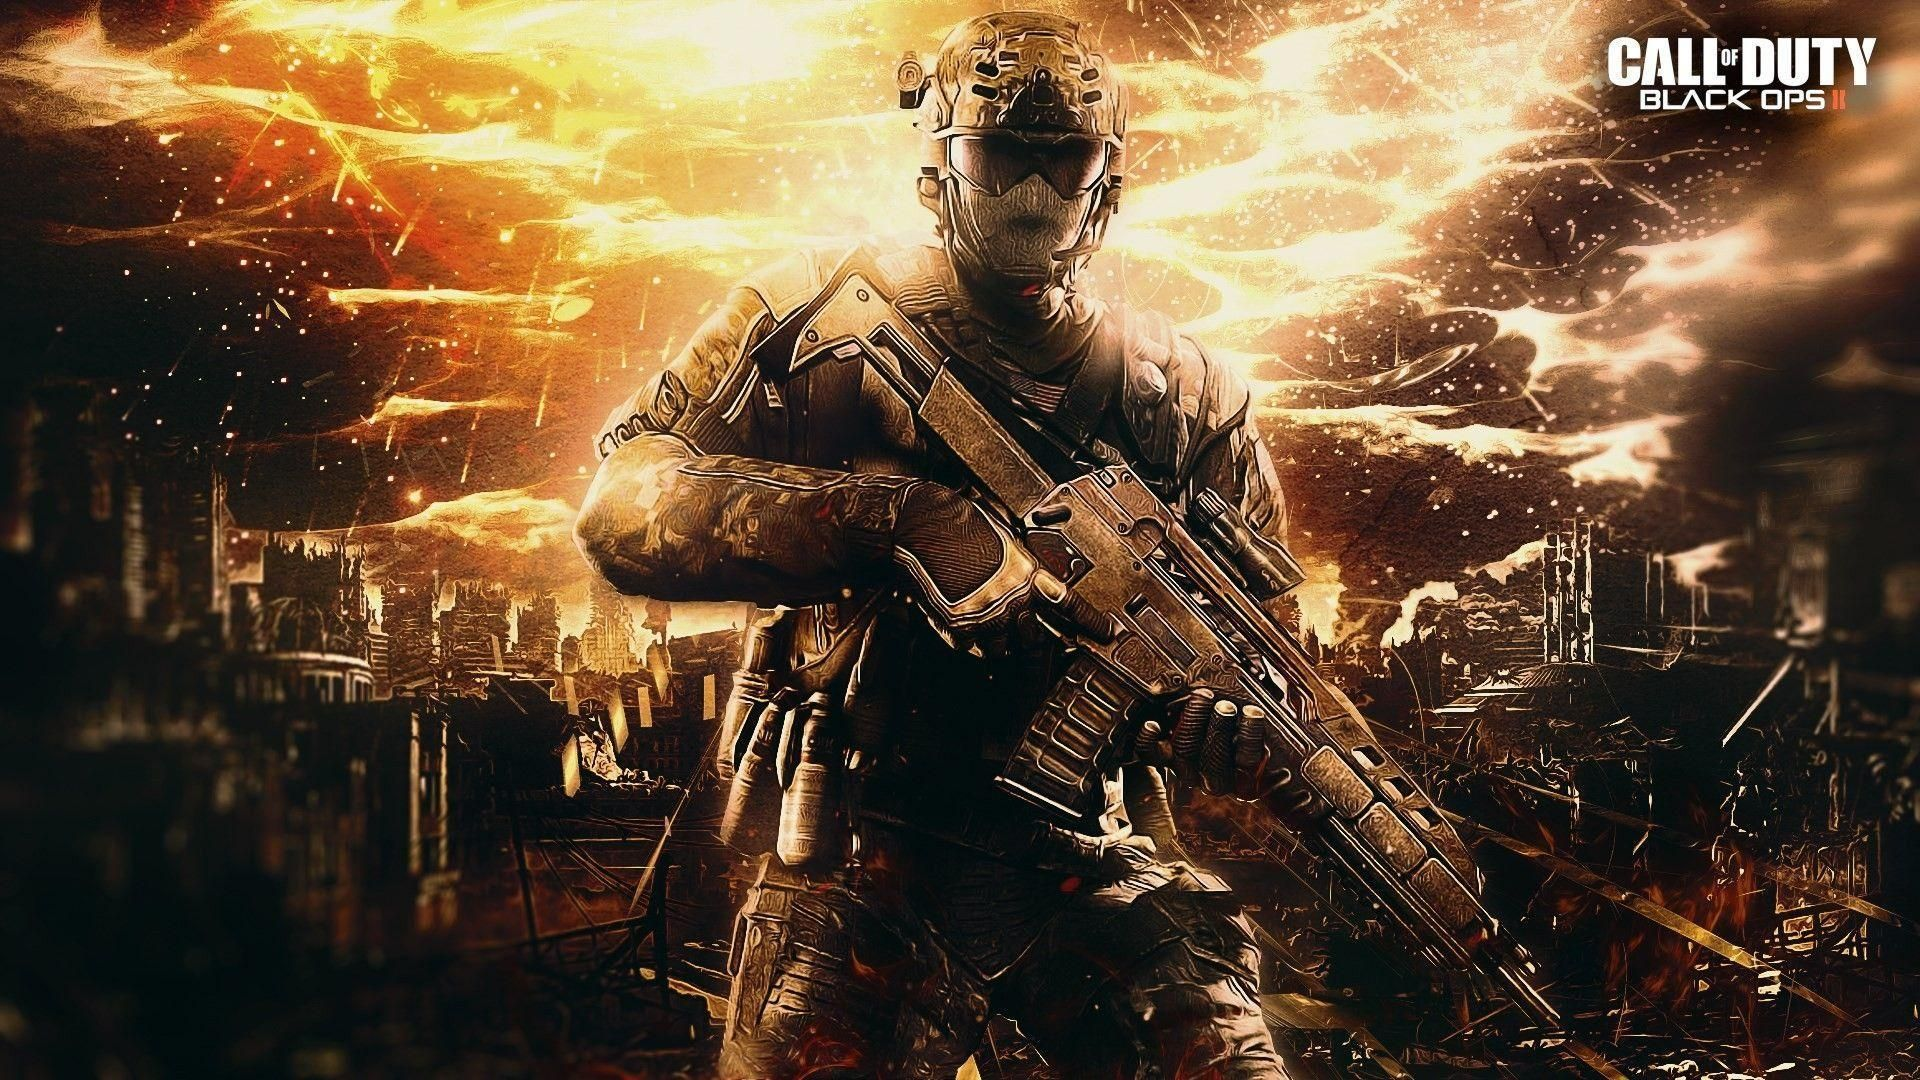 57 Call Of Duty Black Ops II HD Wallpapers Backgrounds 1920x1080